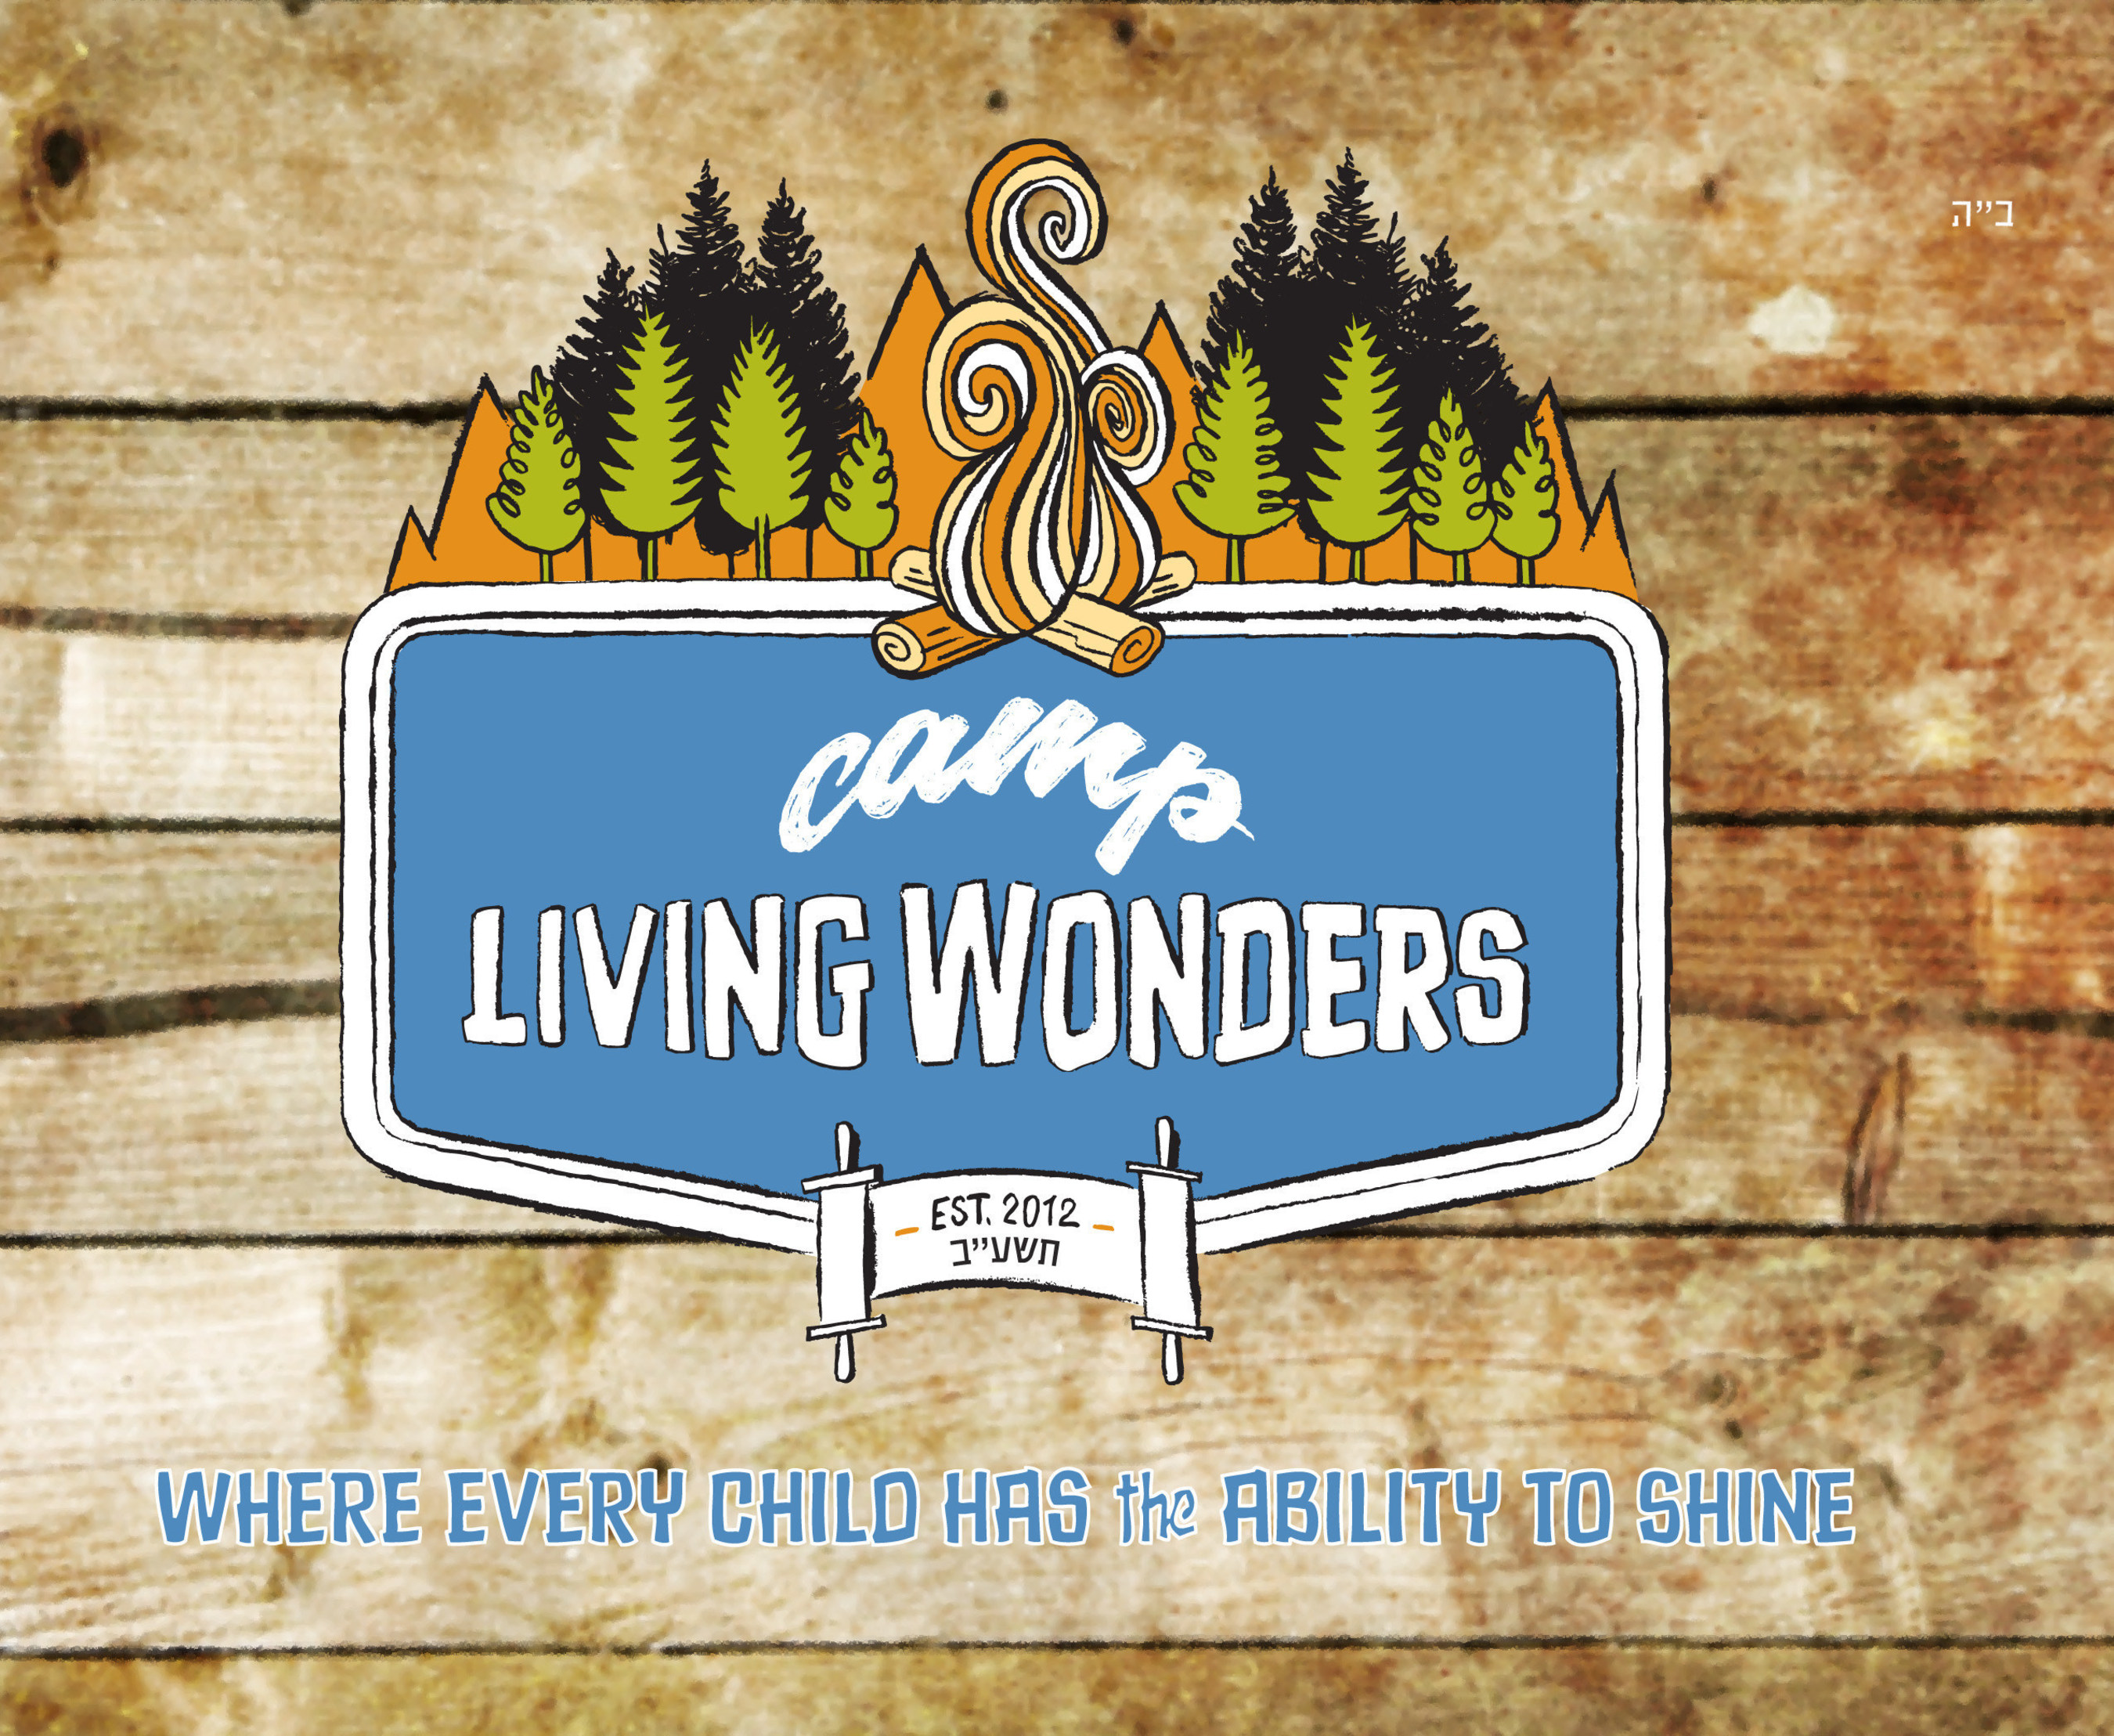 Camp Living Wonders is a 501(c)3 non-profit organization which provides Jewish children with special needs a safe and enriching Summer sleep-away camp experience that fosters growth and brings their dreams to life.